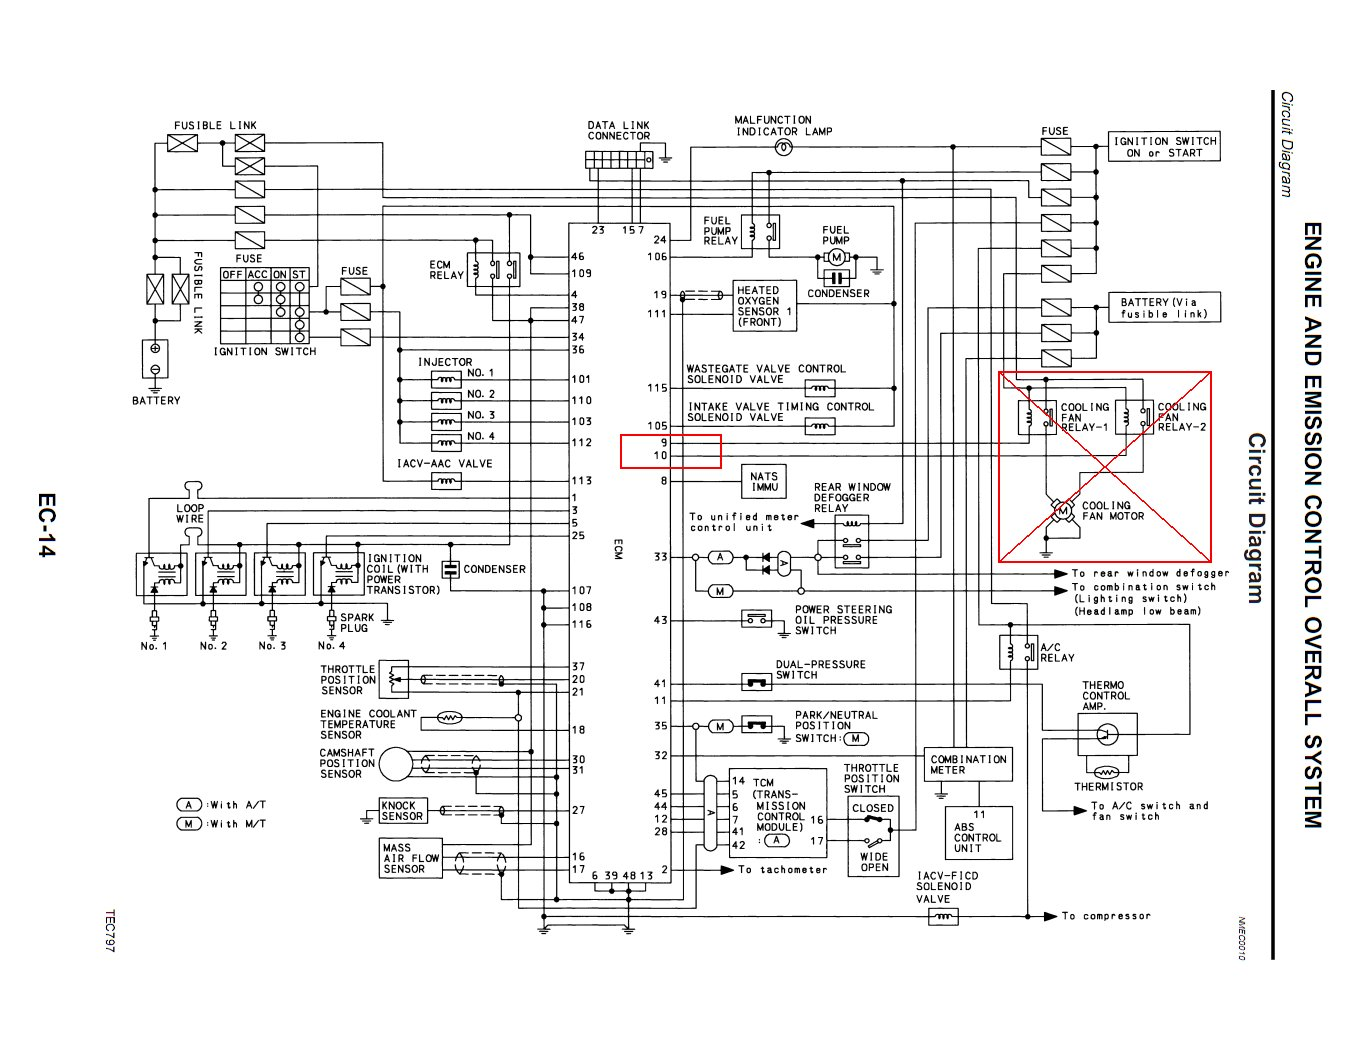 s15 ecu fan 02 nissan s15 thermo fan setup omgpham s15 ecu wiring diagram at gsmportal.co